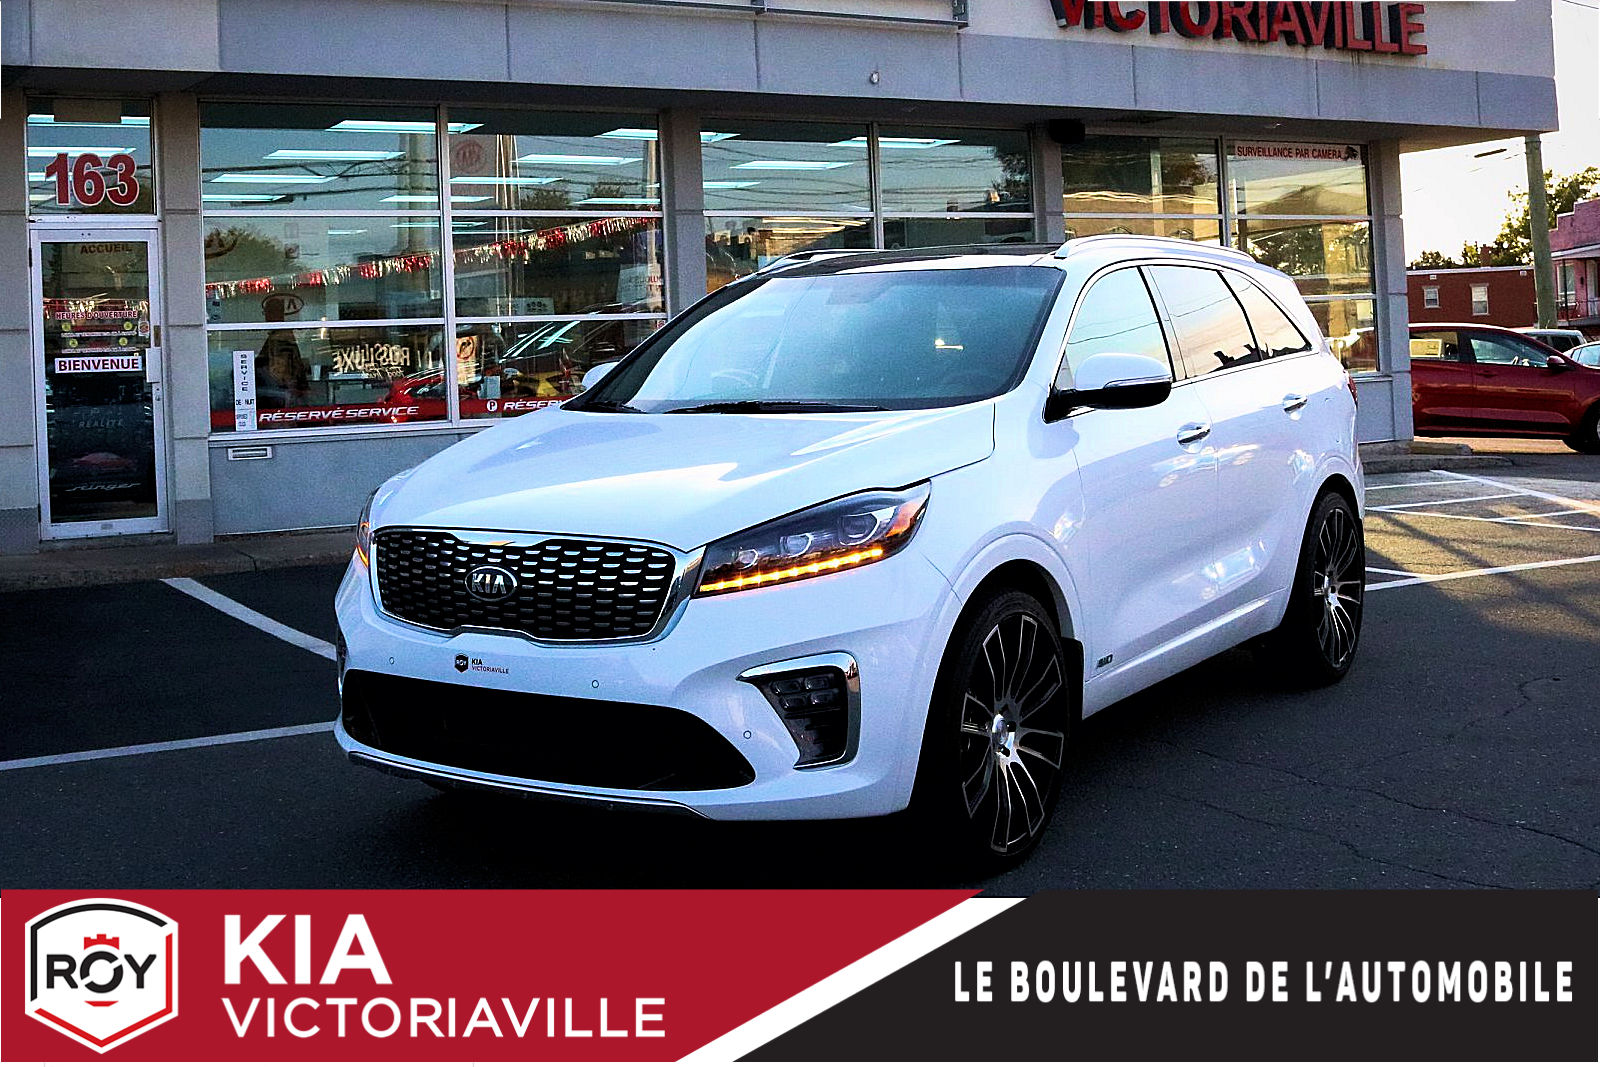 2017 Kia Sorento SX Turbo AWD CUIR TOIT PANORAMIQUE NAVIGATION